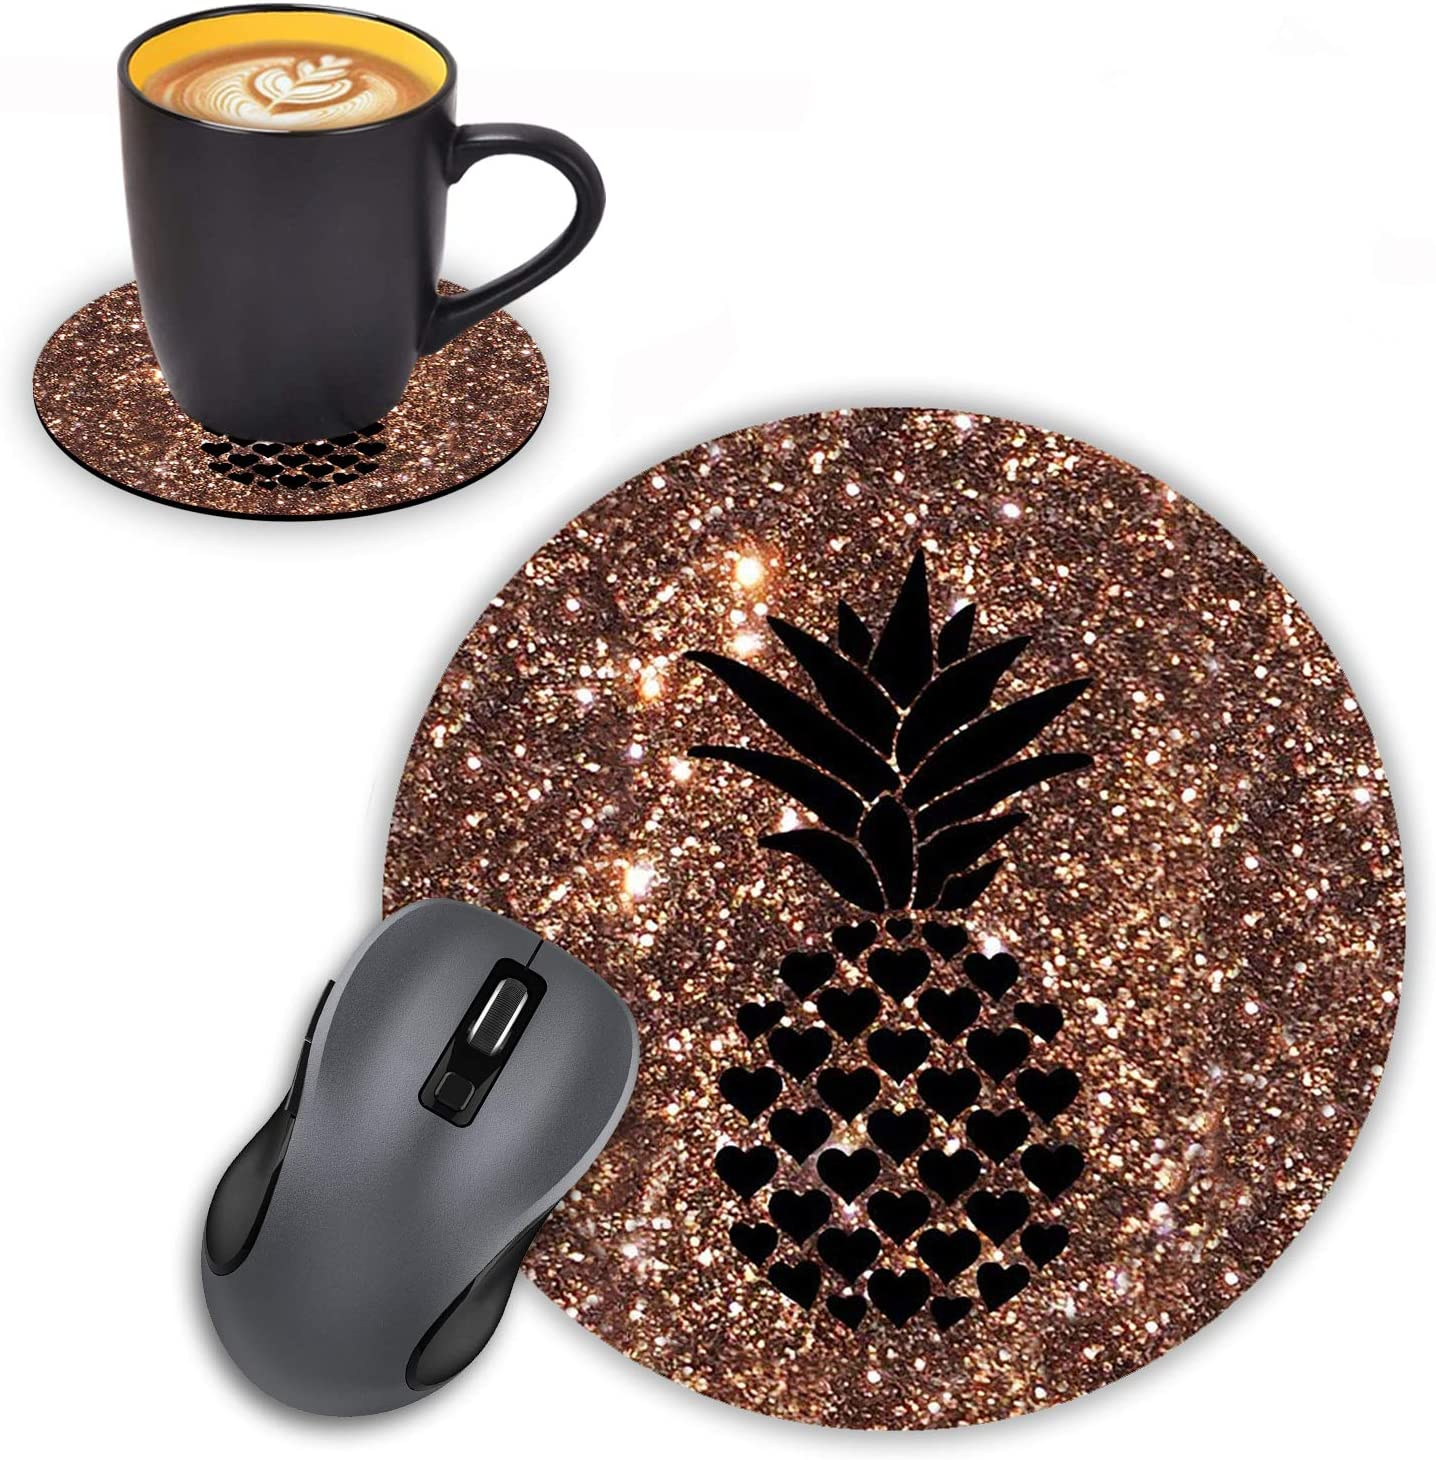 Today's only Log Zog Round Brand Cheap Sale Venue Mouse Pad with Coasters Set Pineapple Glitter on